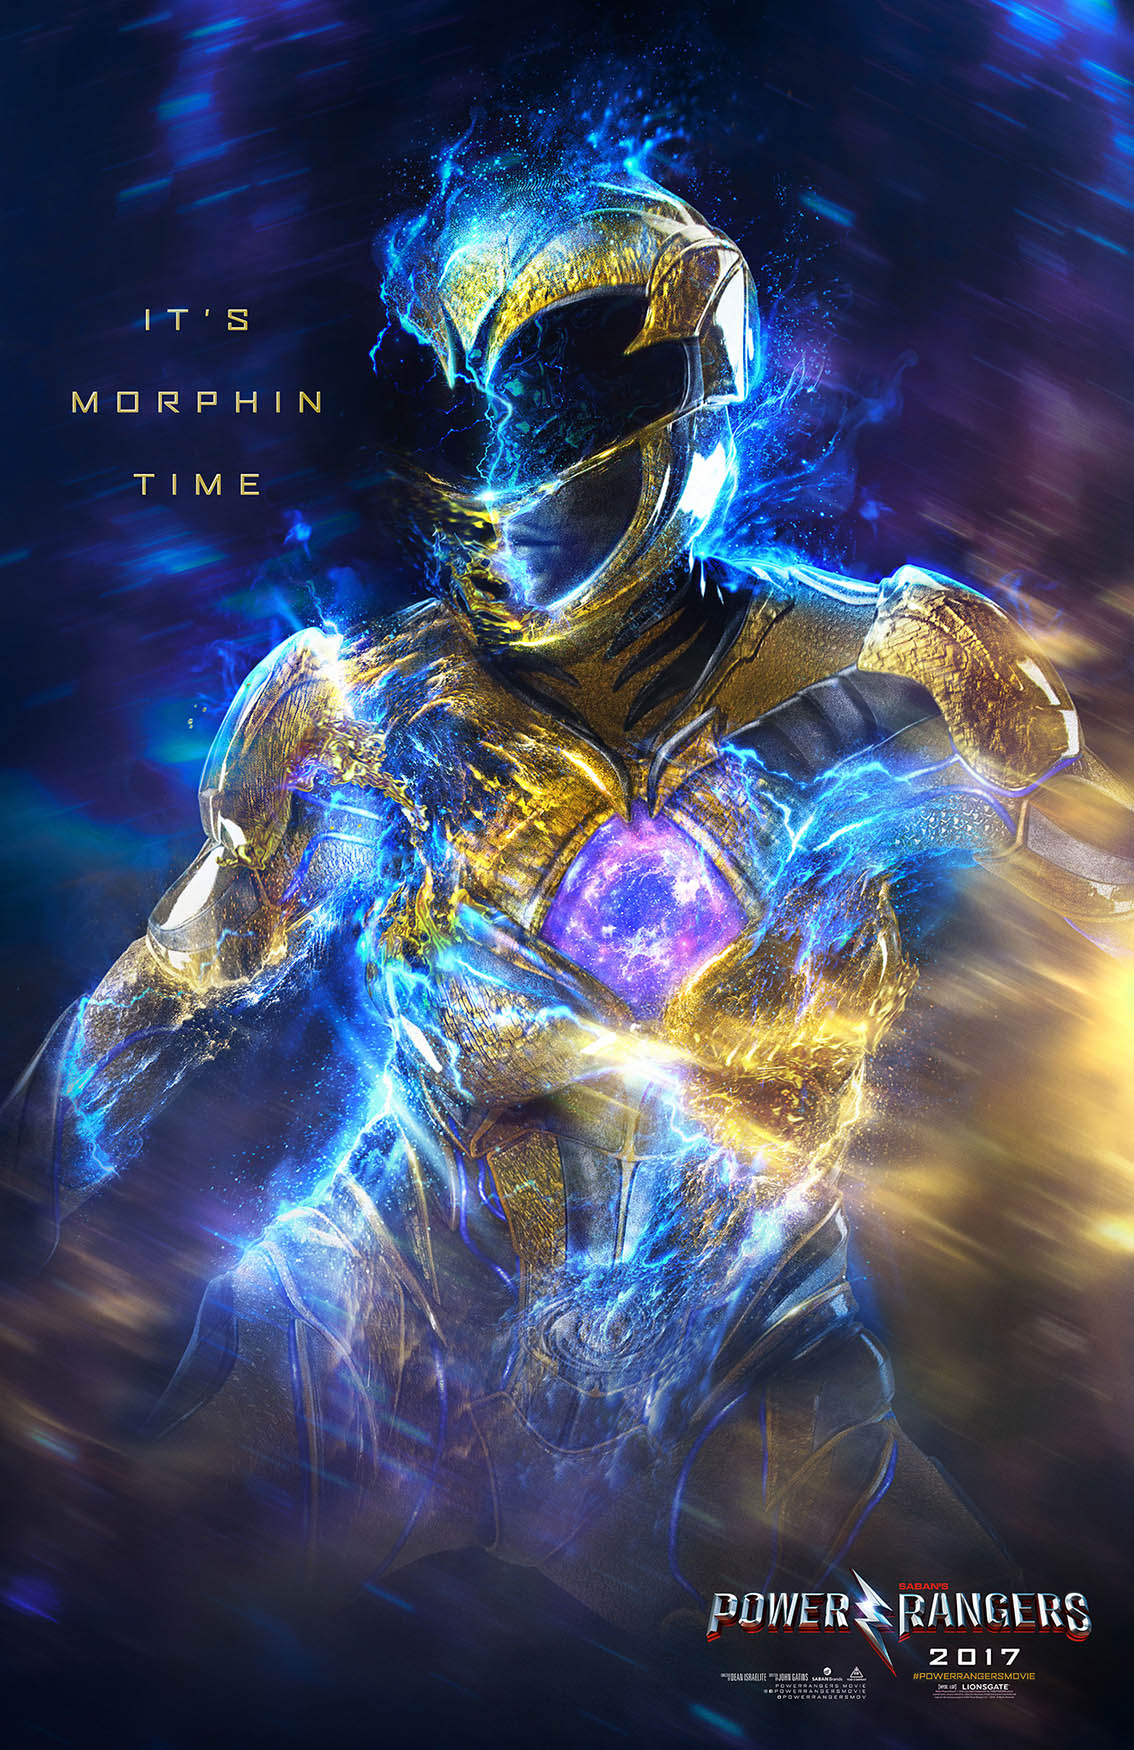 poster designs photoshop power rangers by chris christodoulou